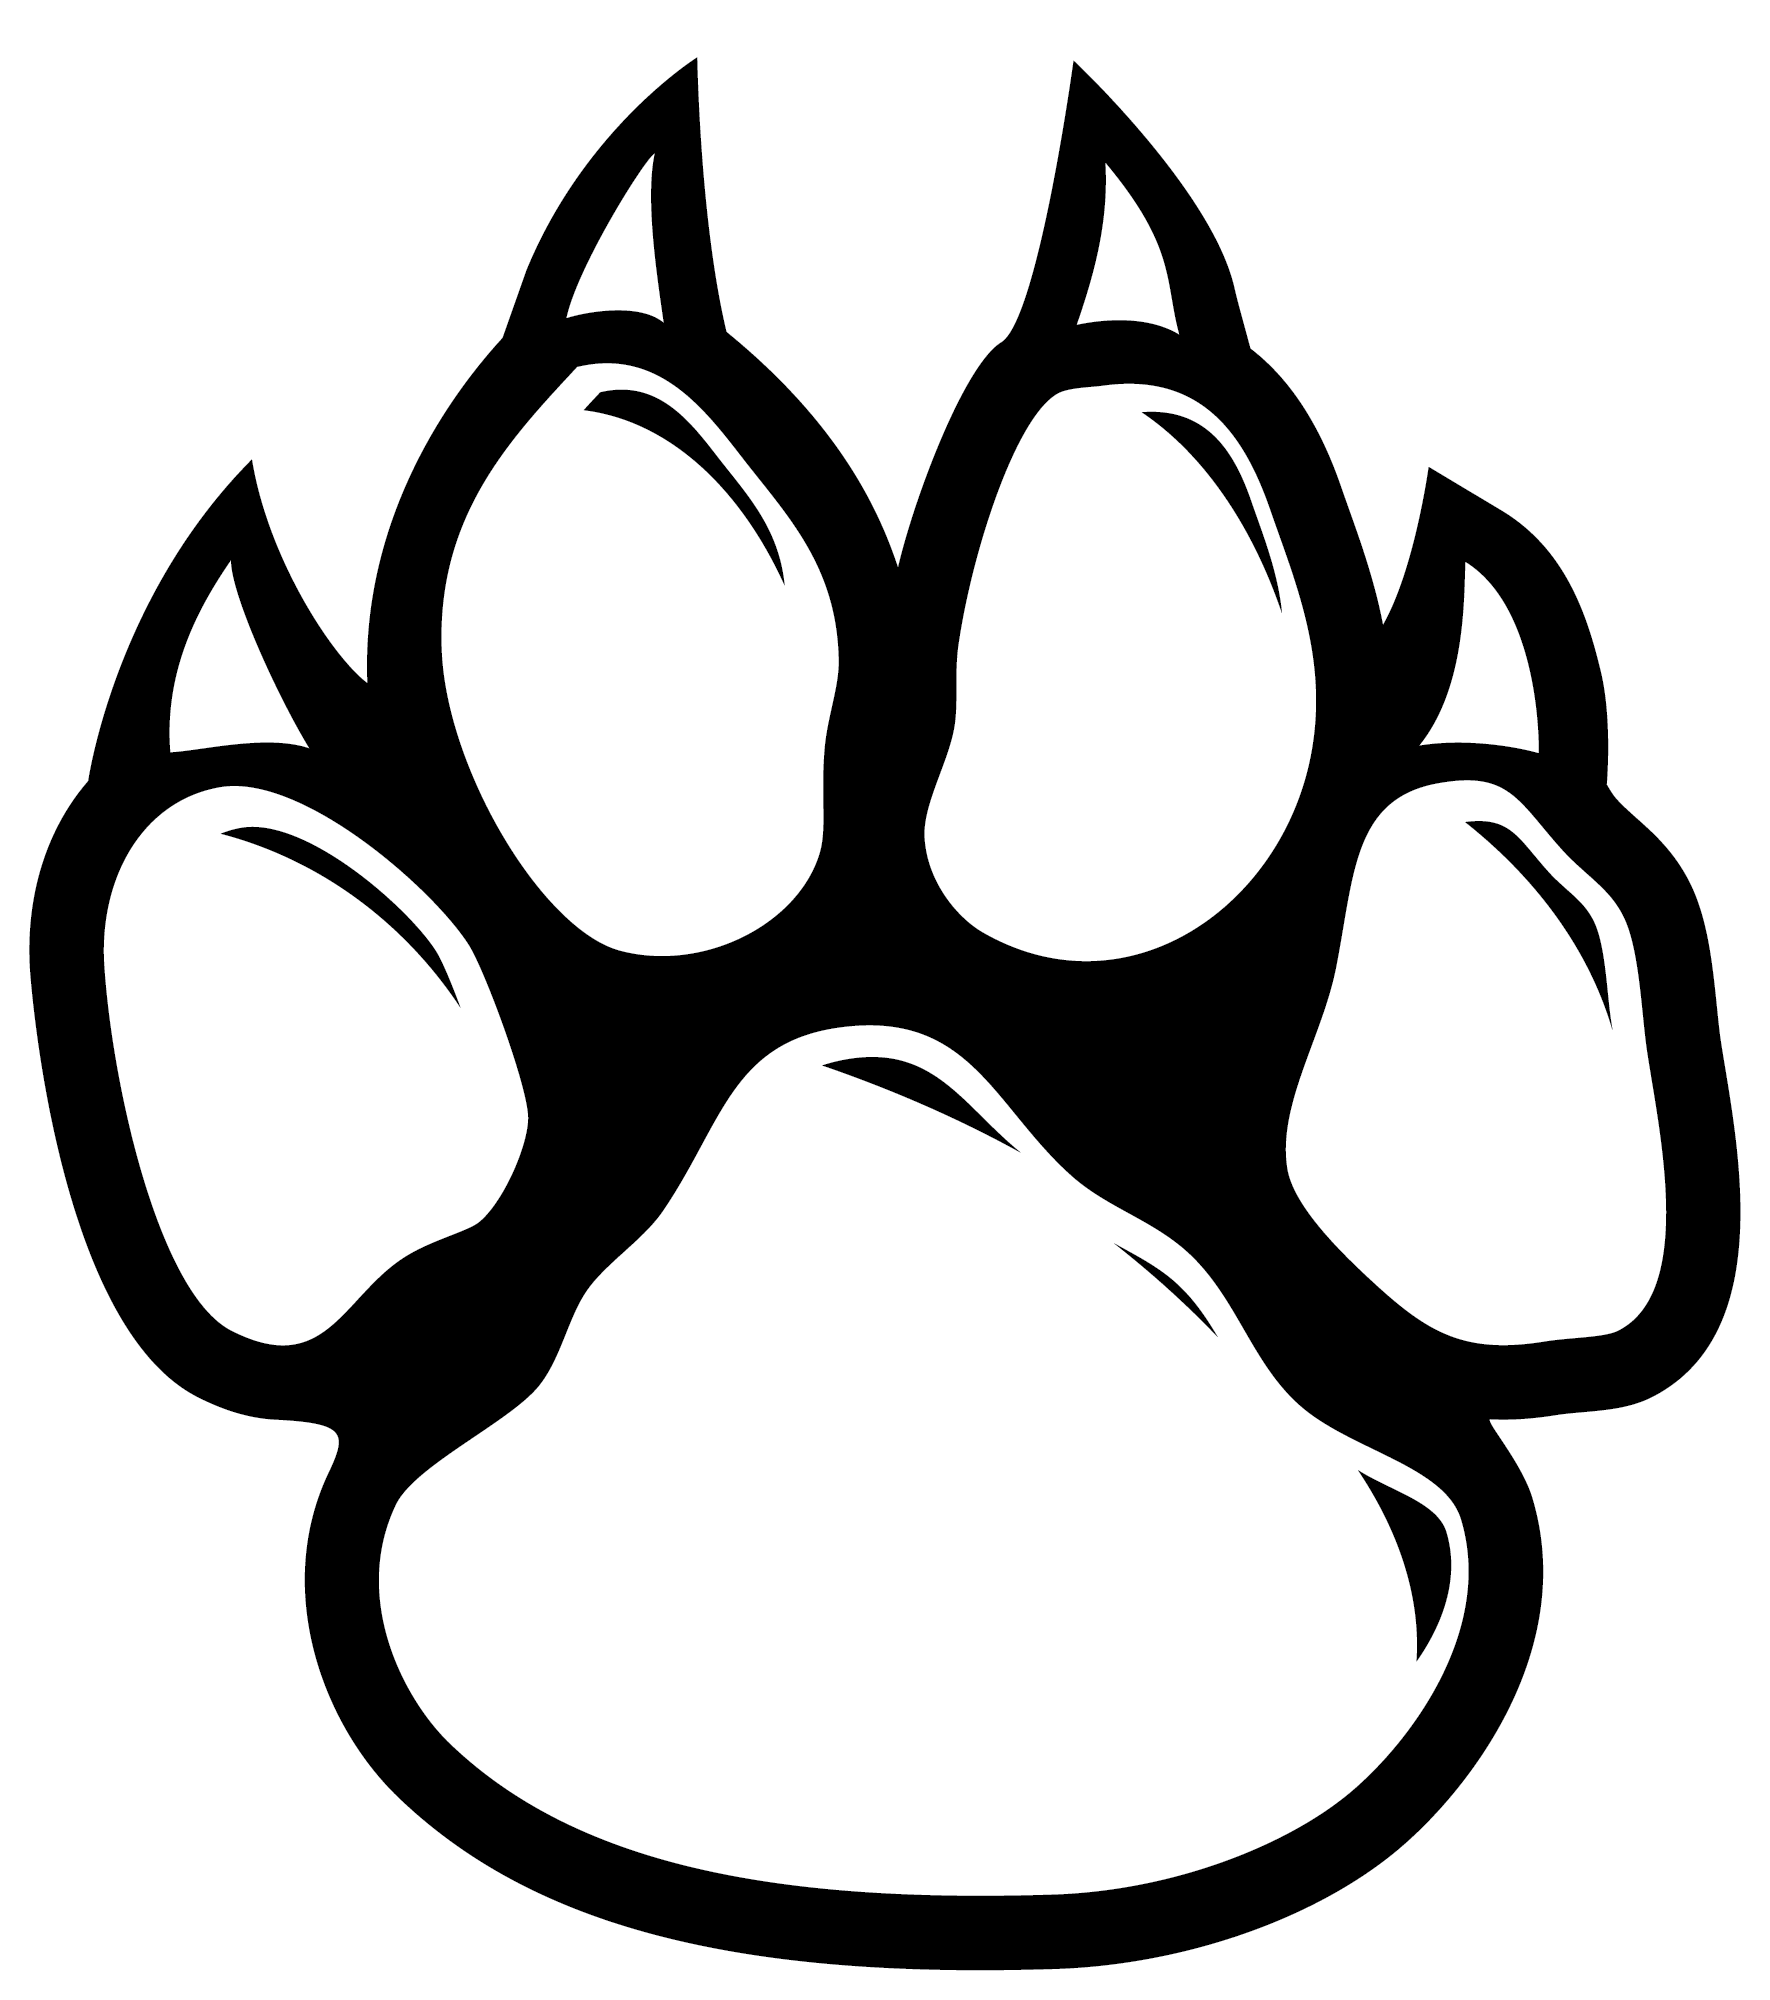 graphic library download Wildcat paw dog clip. Wildcats drawing